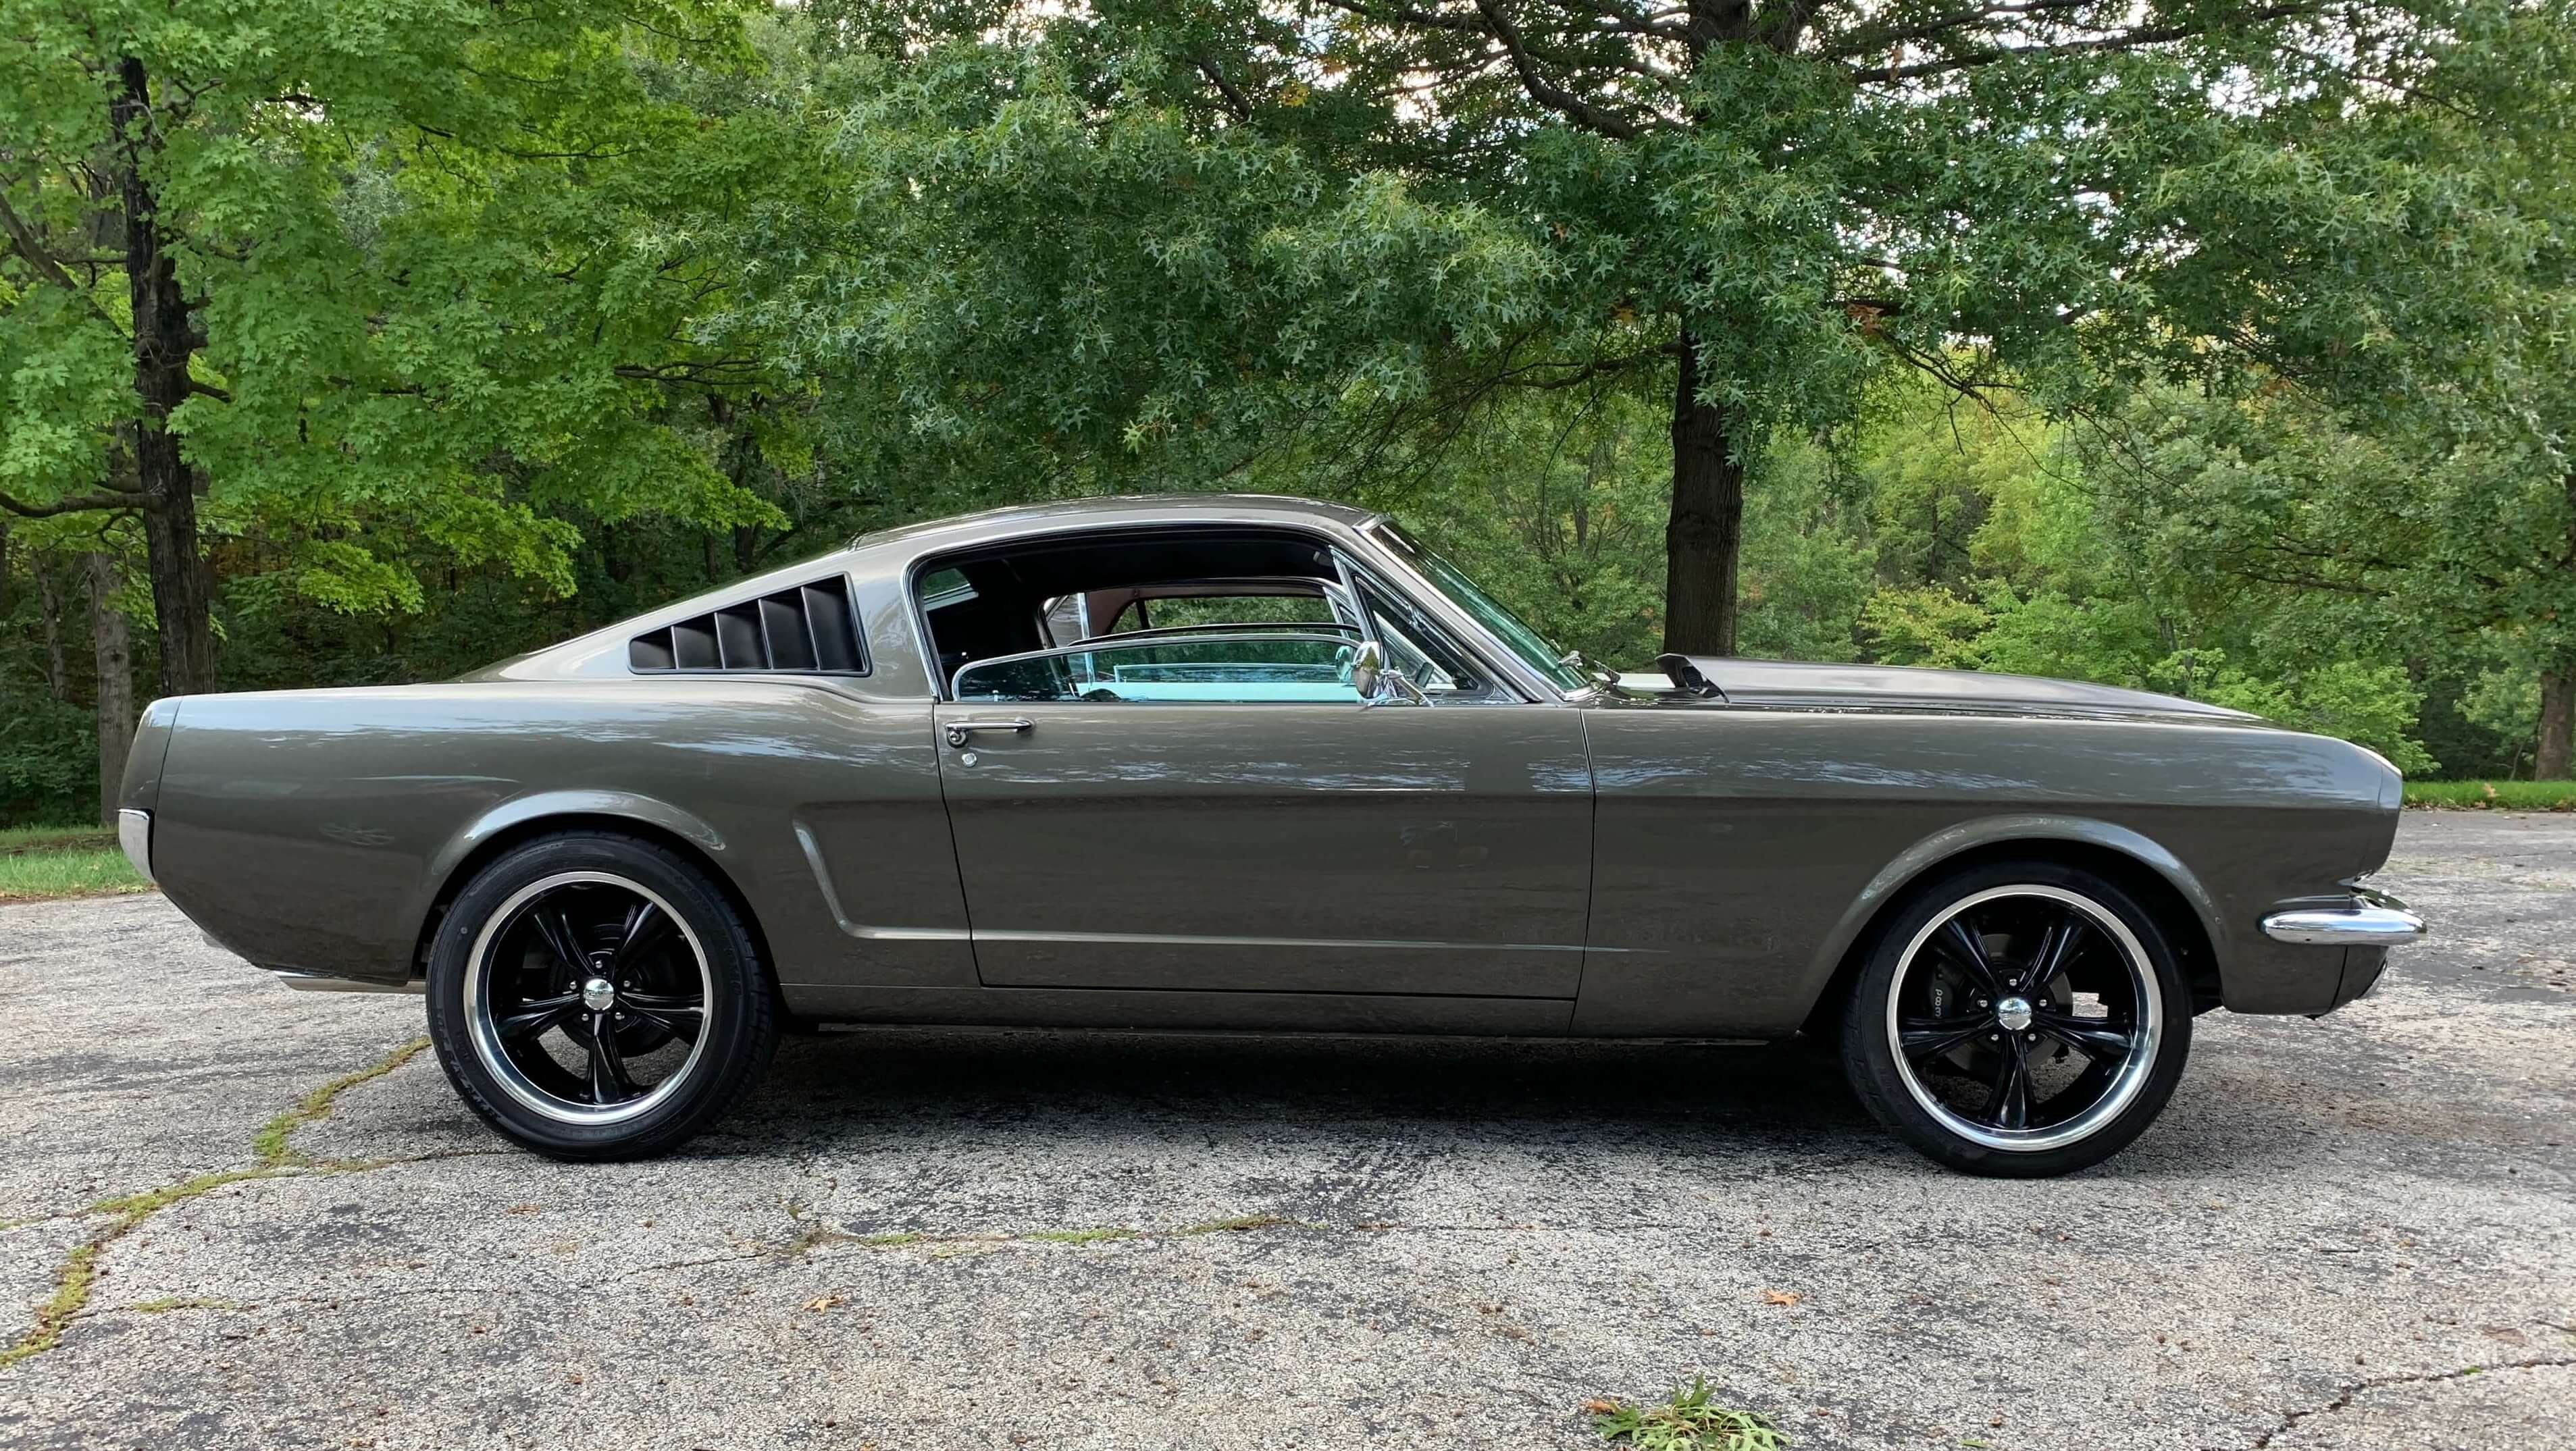 Bruce's 1966 Ford Mustang - Holley My Garage